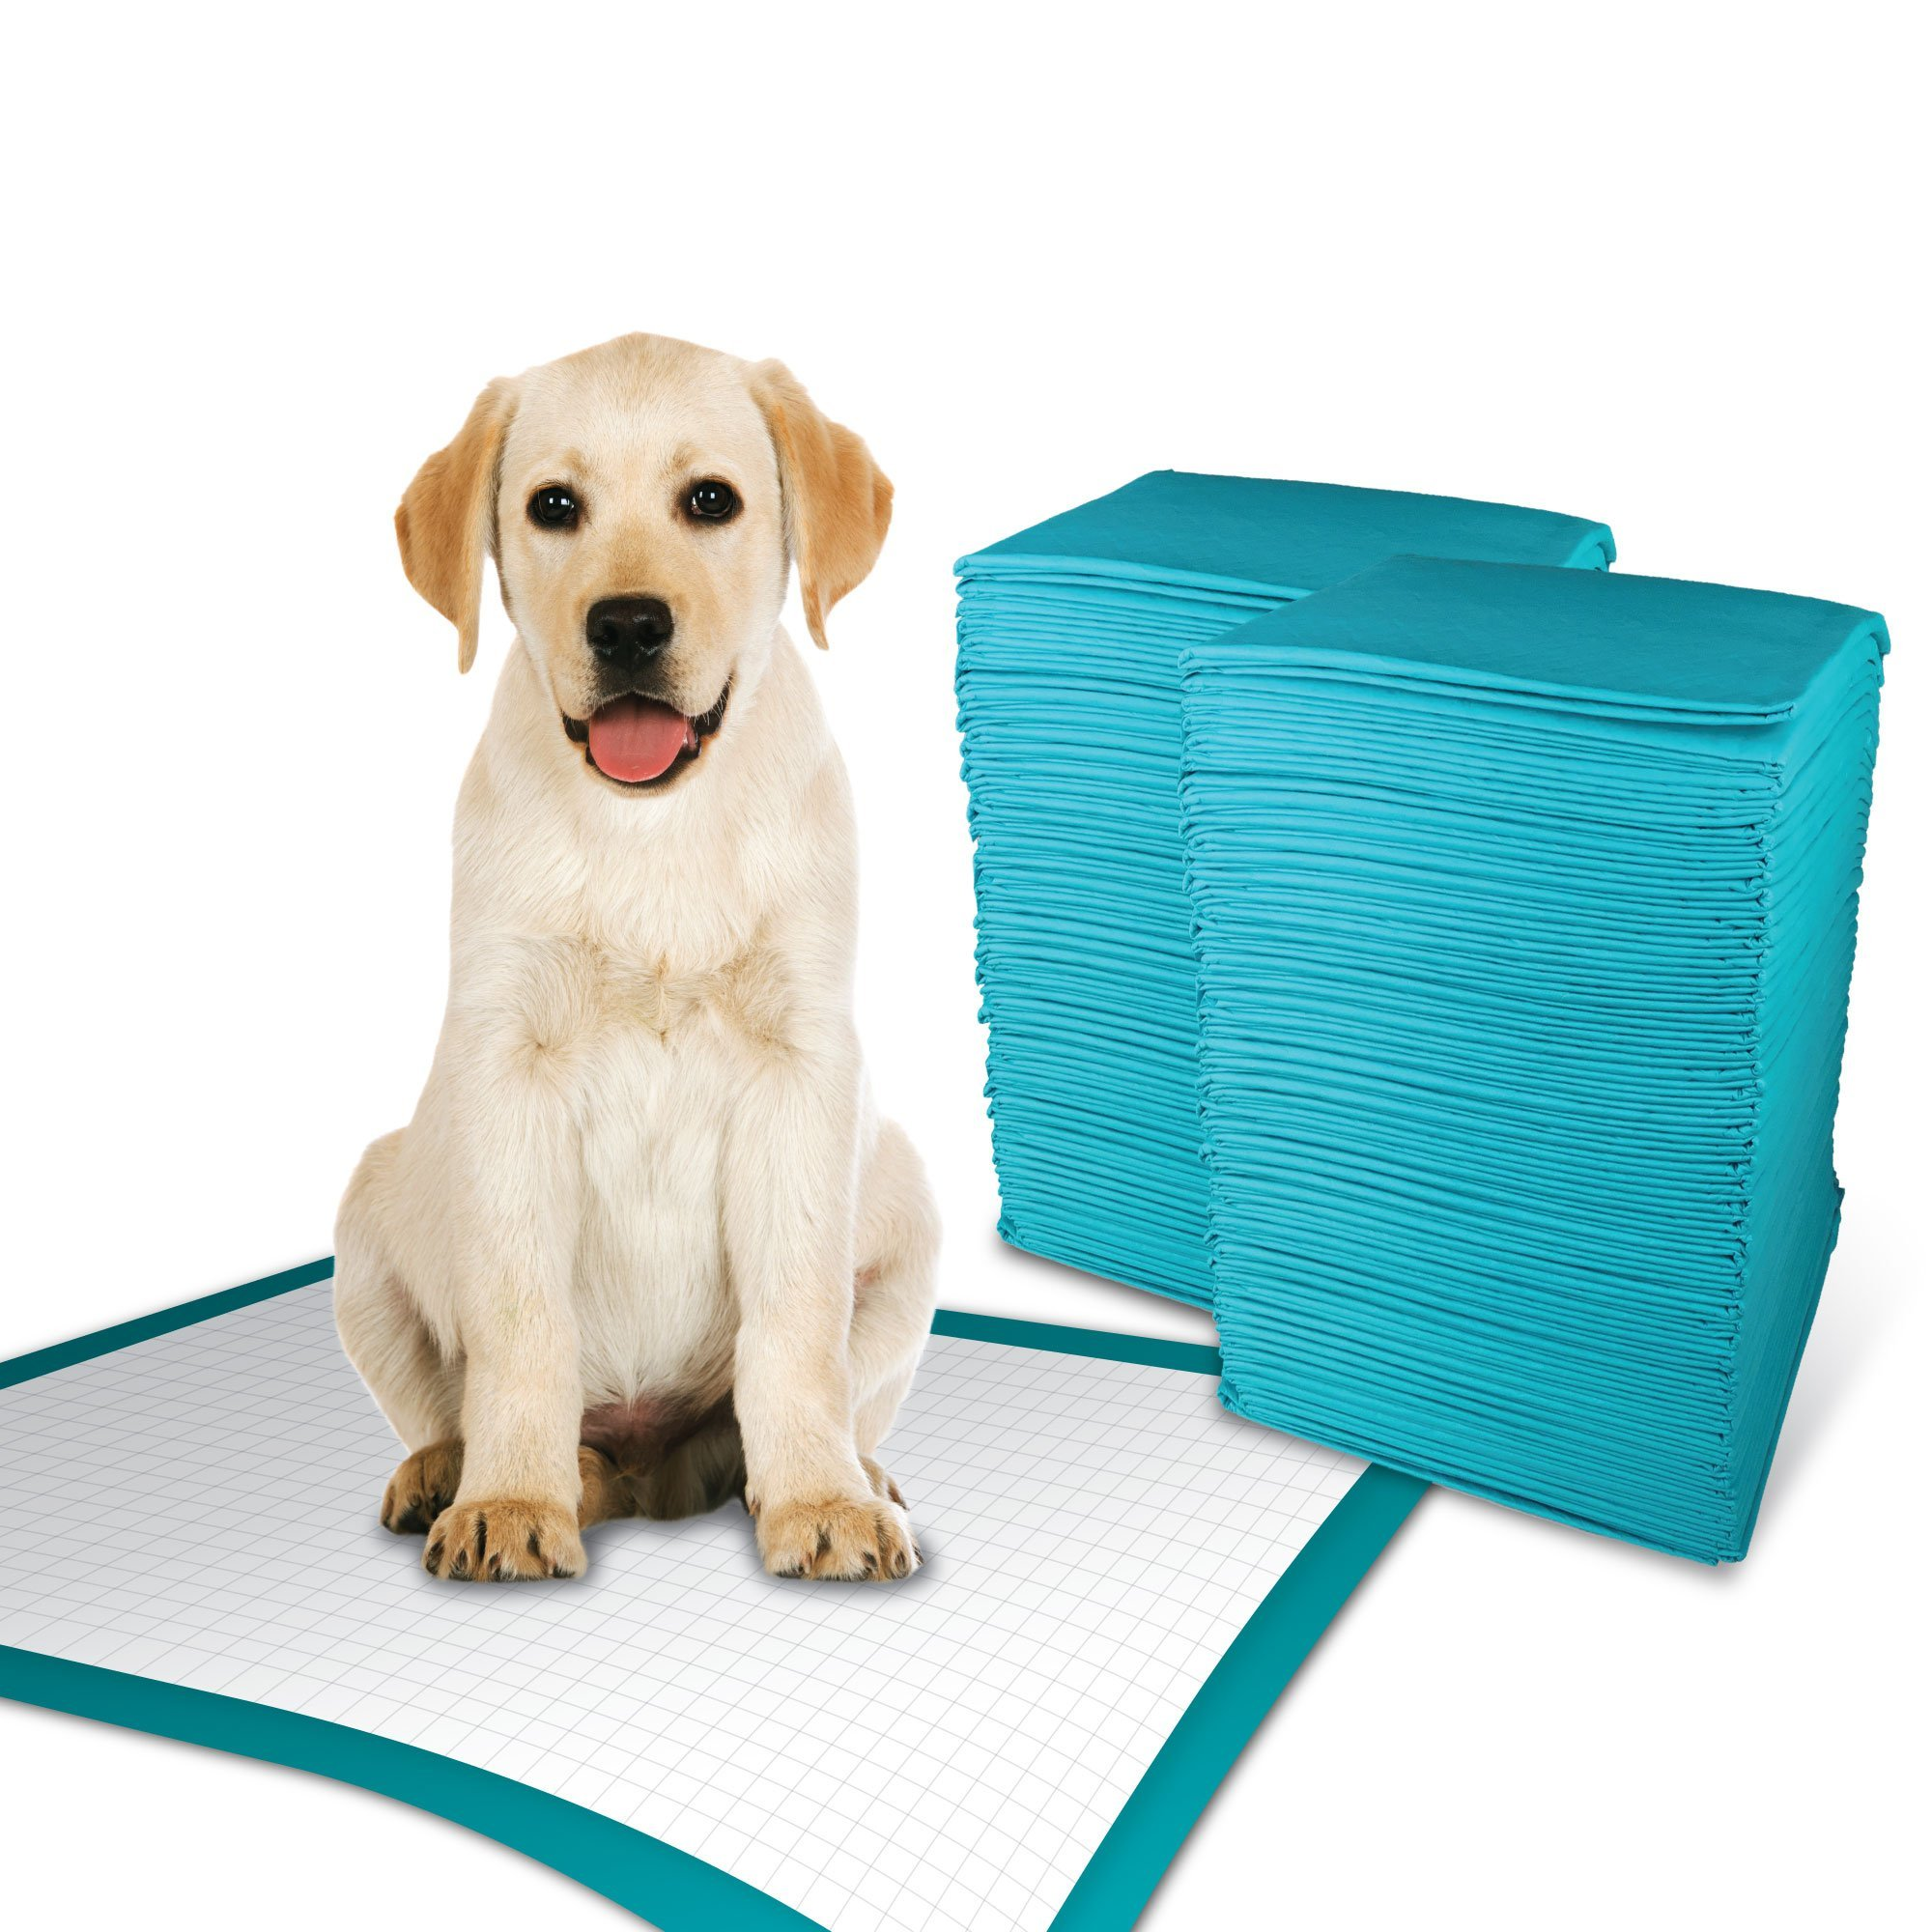 Simple Solution Training Puppy Pads | Extra Large, 6 Layer Dog Pee Pads, Absorbs Up to 7 Cups of Liquid | 28x30 Inches, 100 Count by Simple Solution